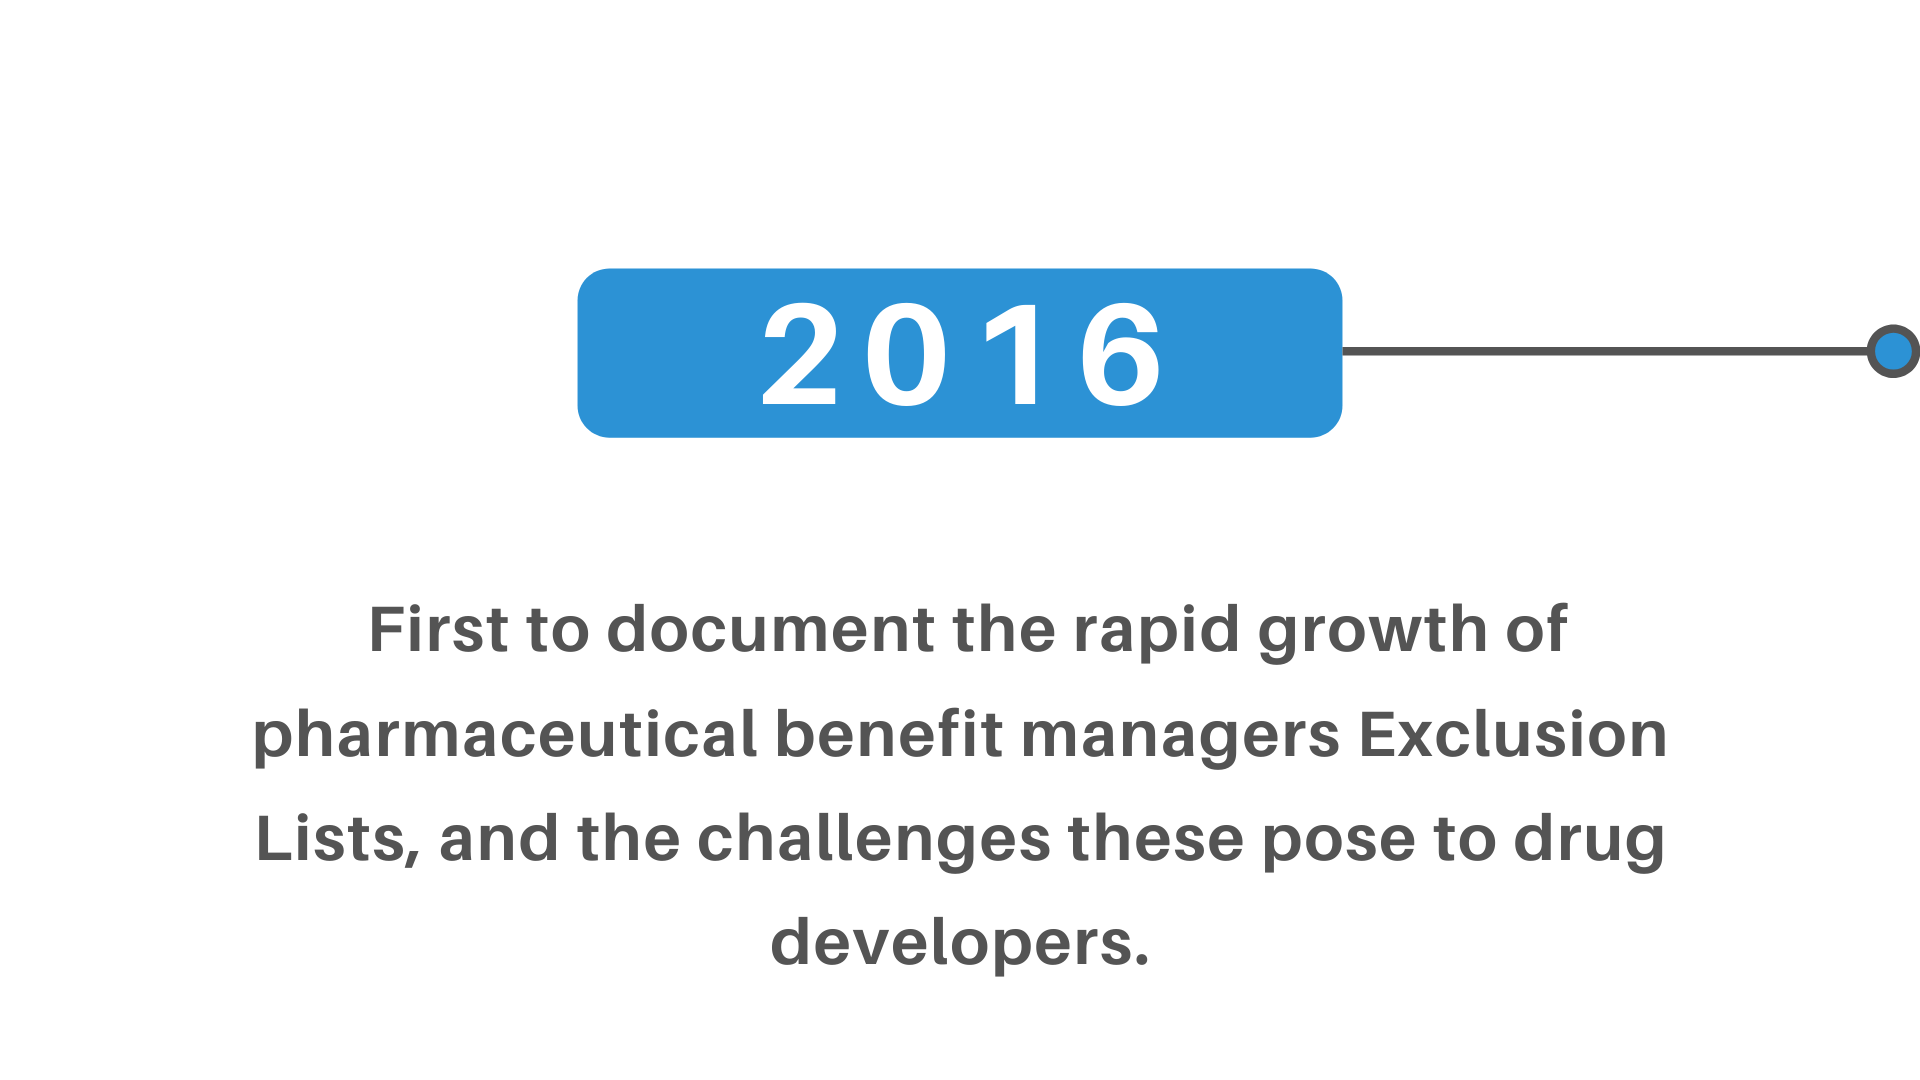 rapid growth pharmaceutical benefit managers exclusion lists drug developers